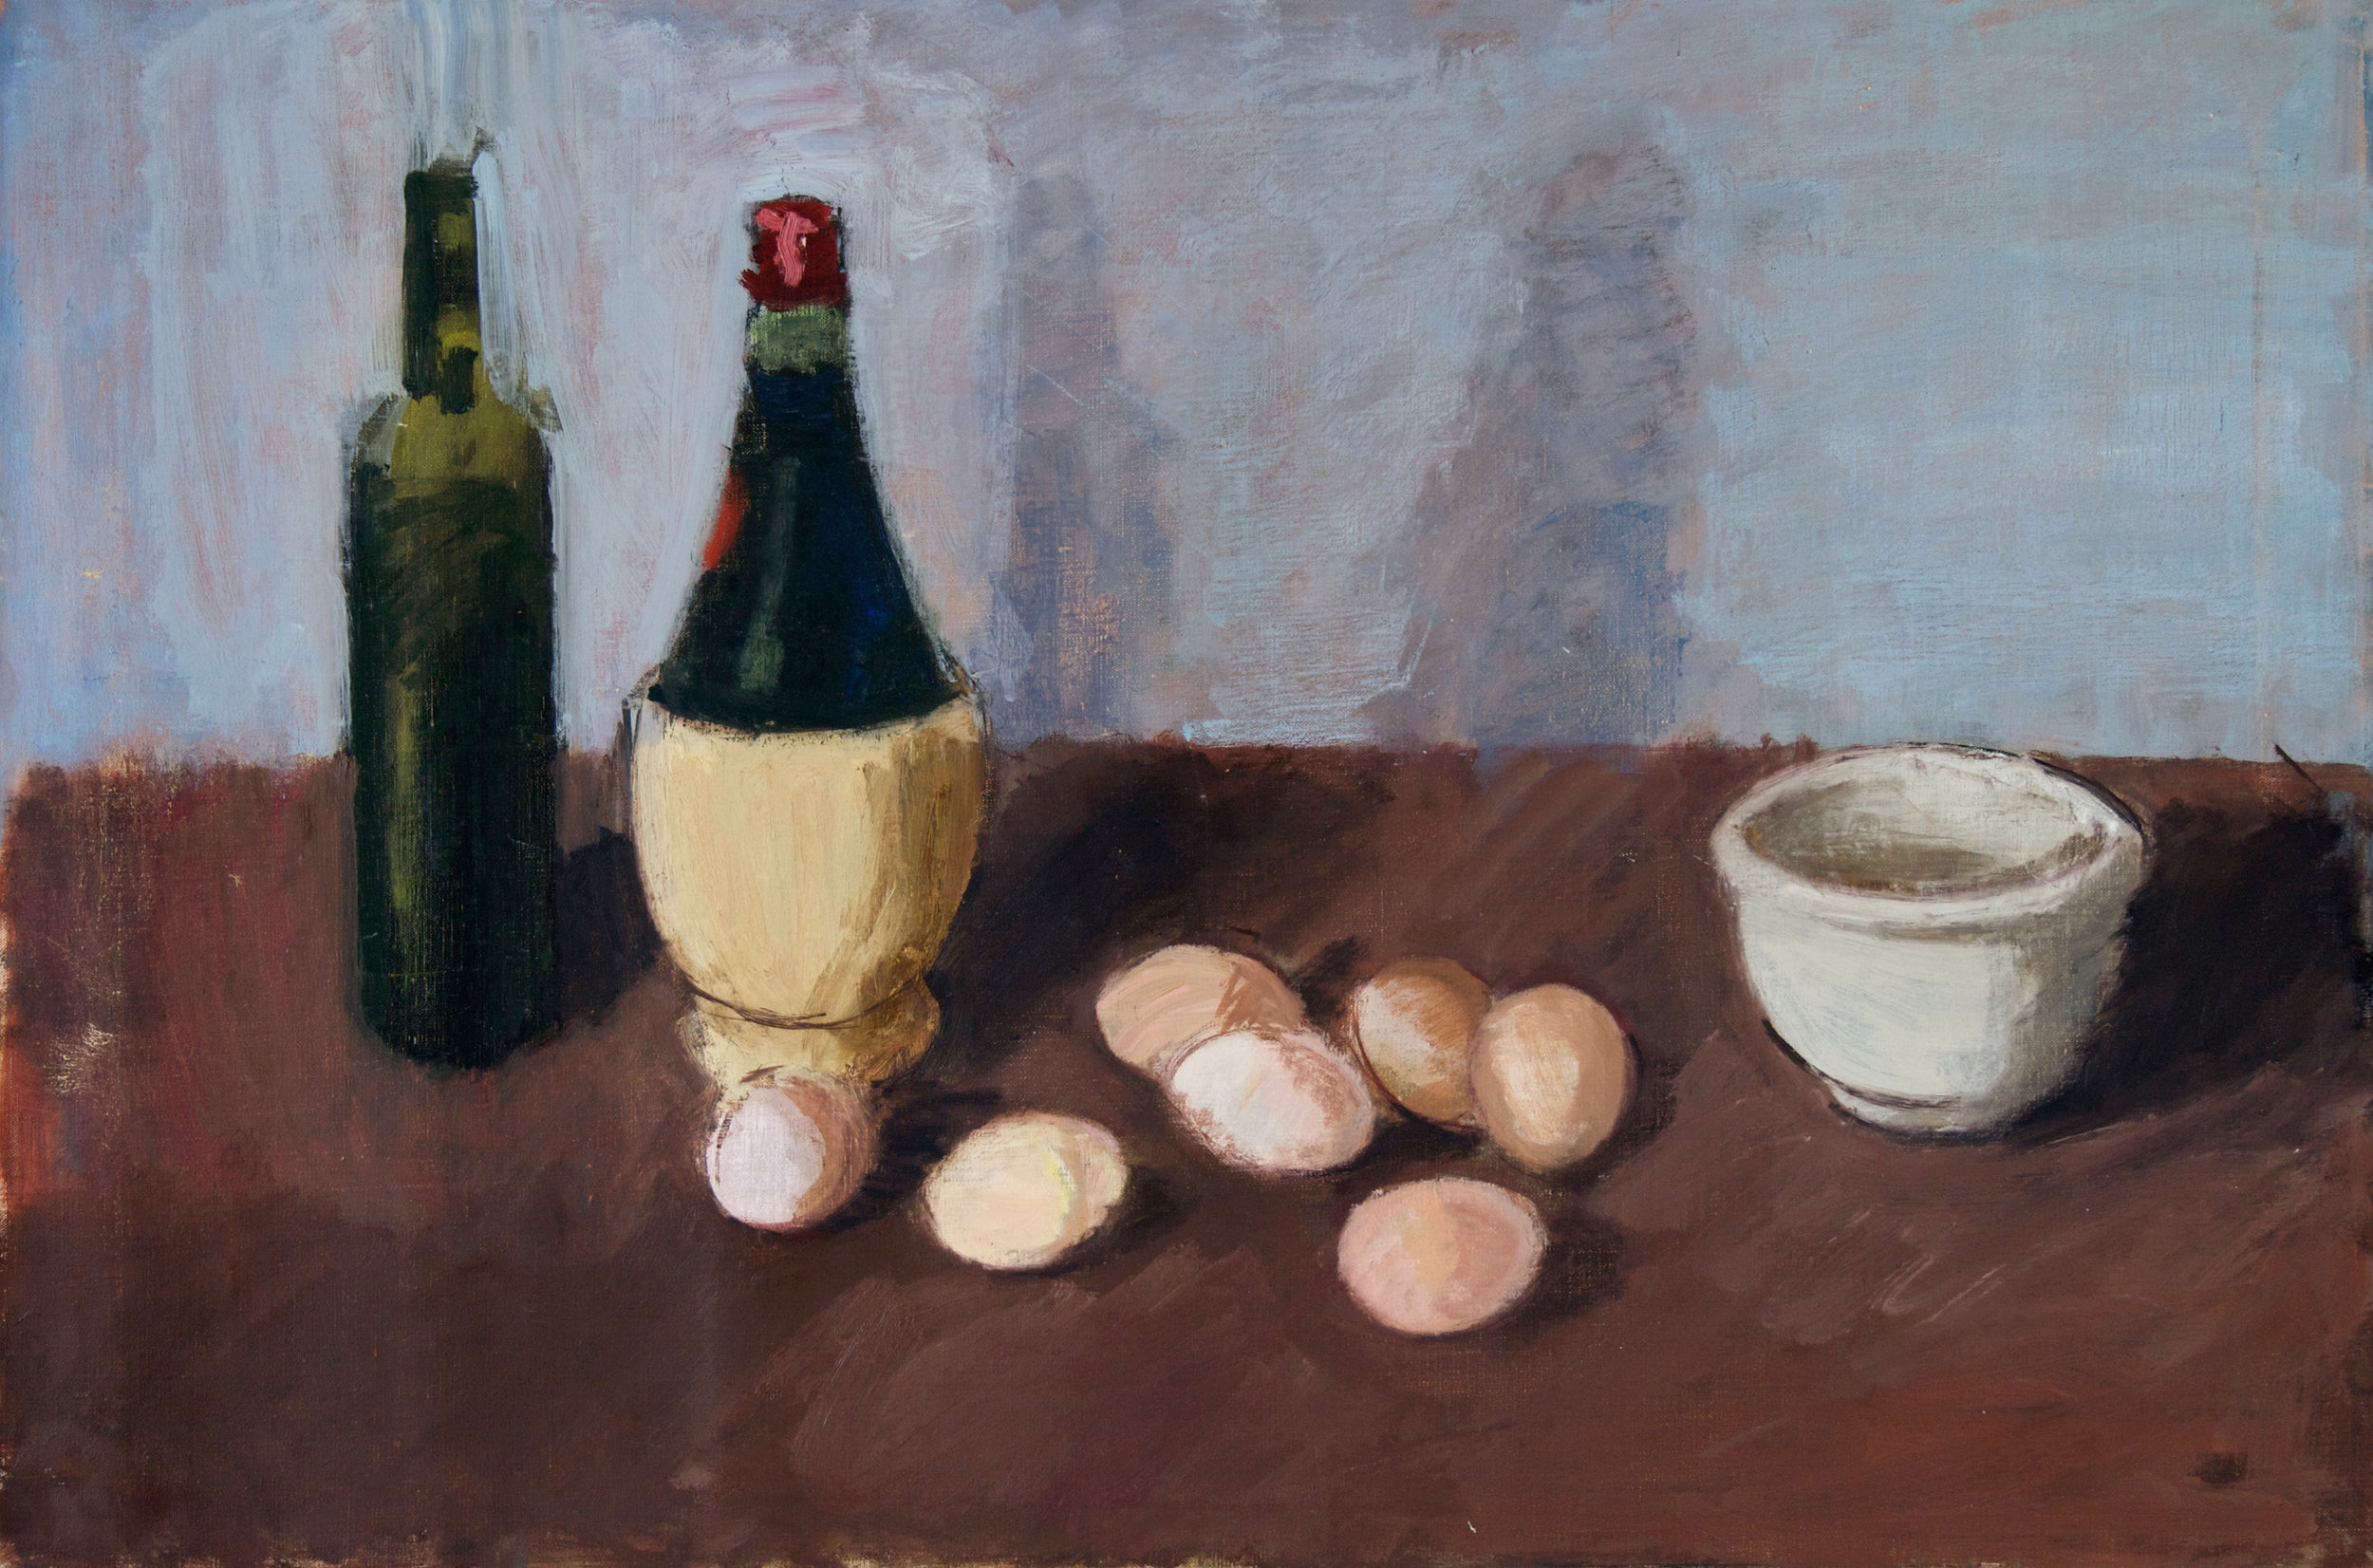 1951_Still_Life_with_Eggs_oil_on_linen_20x30in_PF308.jpg